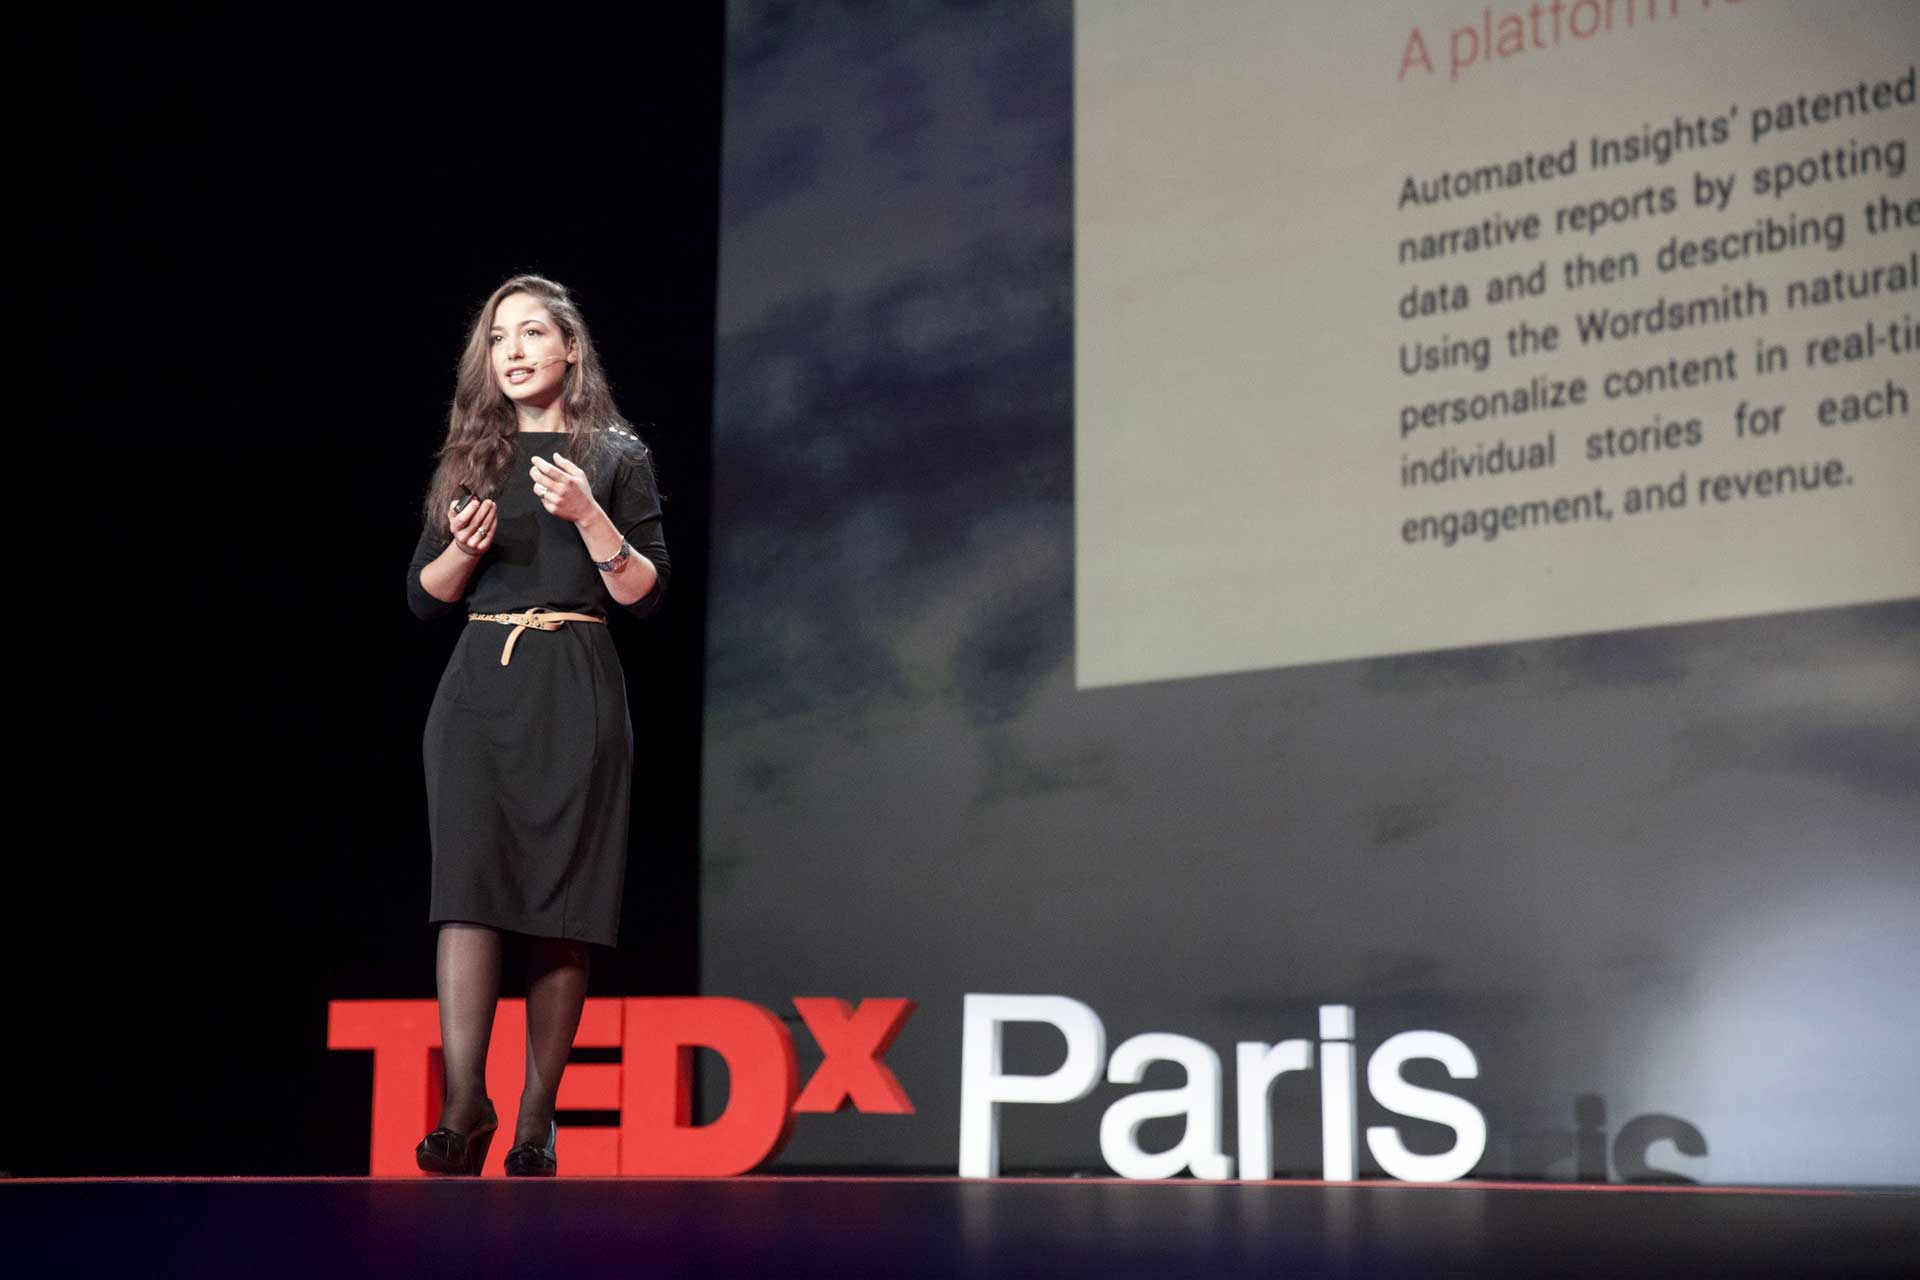 conference-TEDxParis-2014-6.jpg